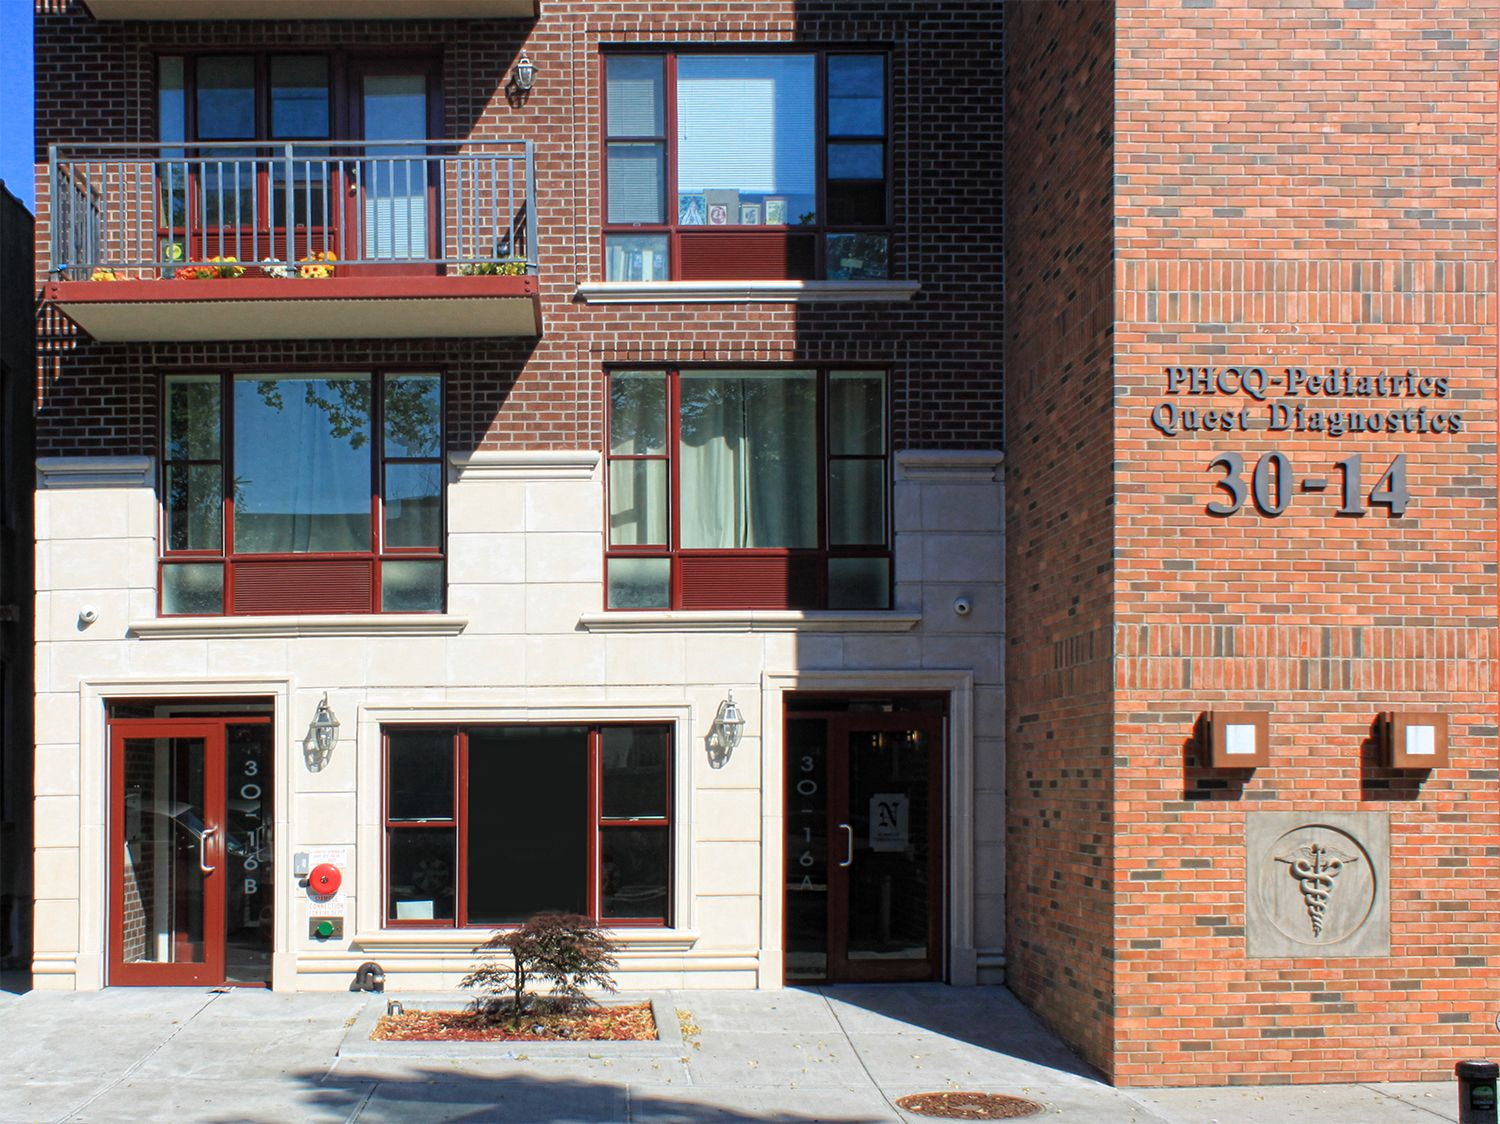 This is the front of an apartment building where we used #precast concrete for the architectural #design. Our precast concrete looks great on any #apartment building which makes all tenants feel at home.